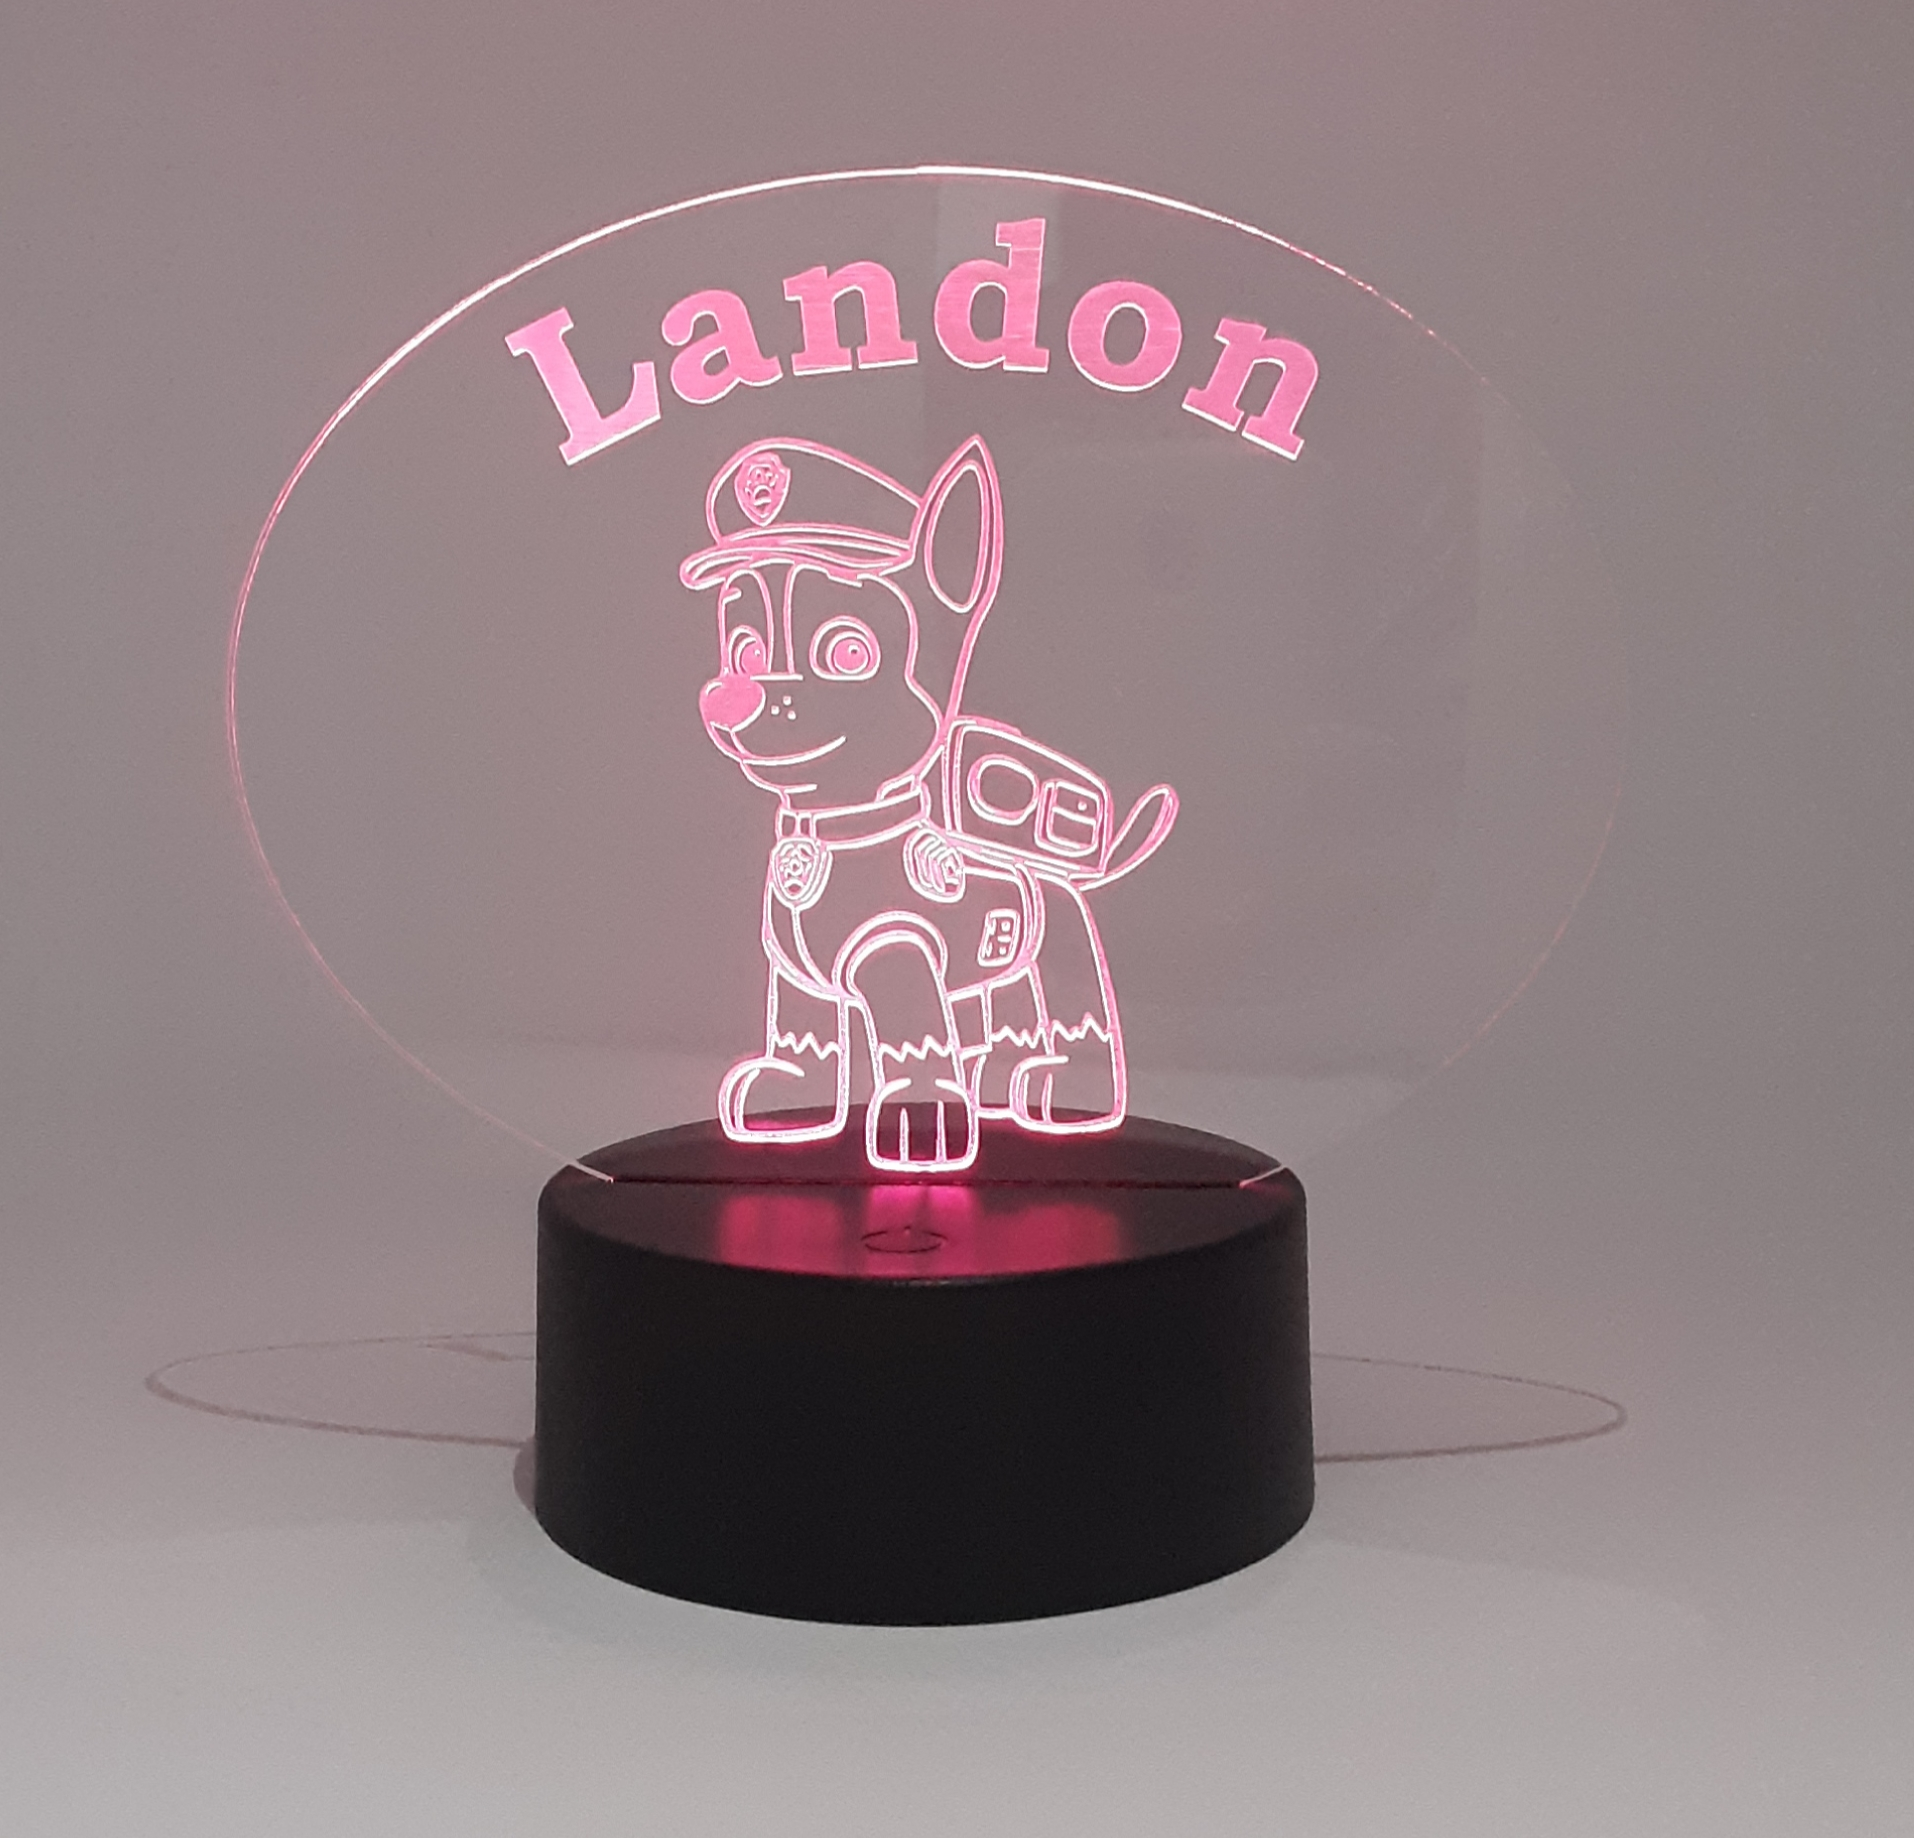 LHT005 - Acrylic Sign with Round LED Light Base